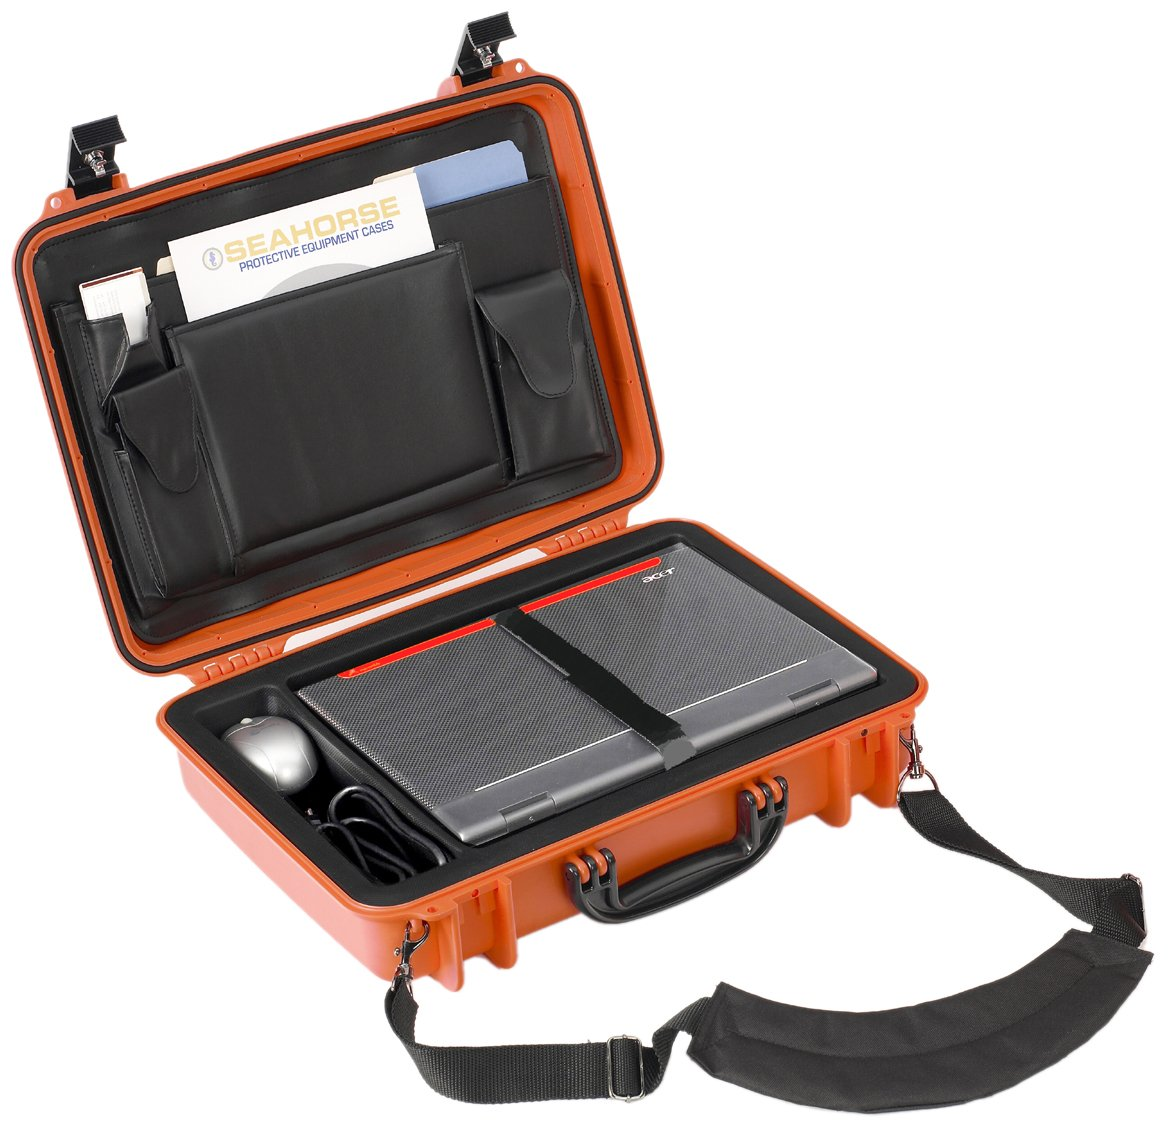 Seahorse 710 Protective Laptop Case with Lid Organizer, Neon Orange by Seahorse (Image #1)